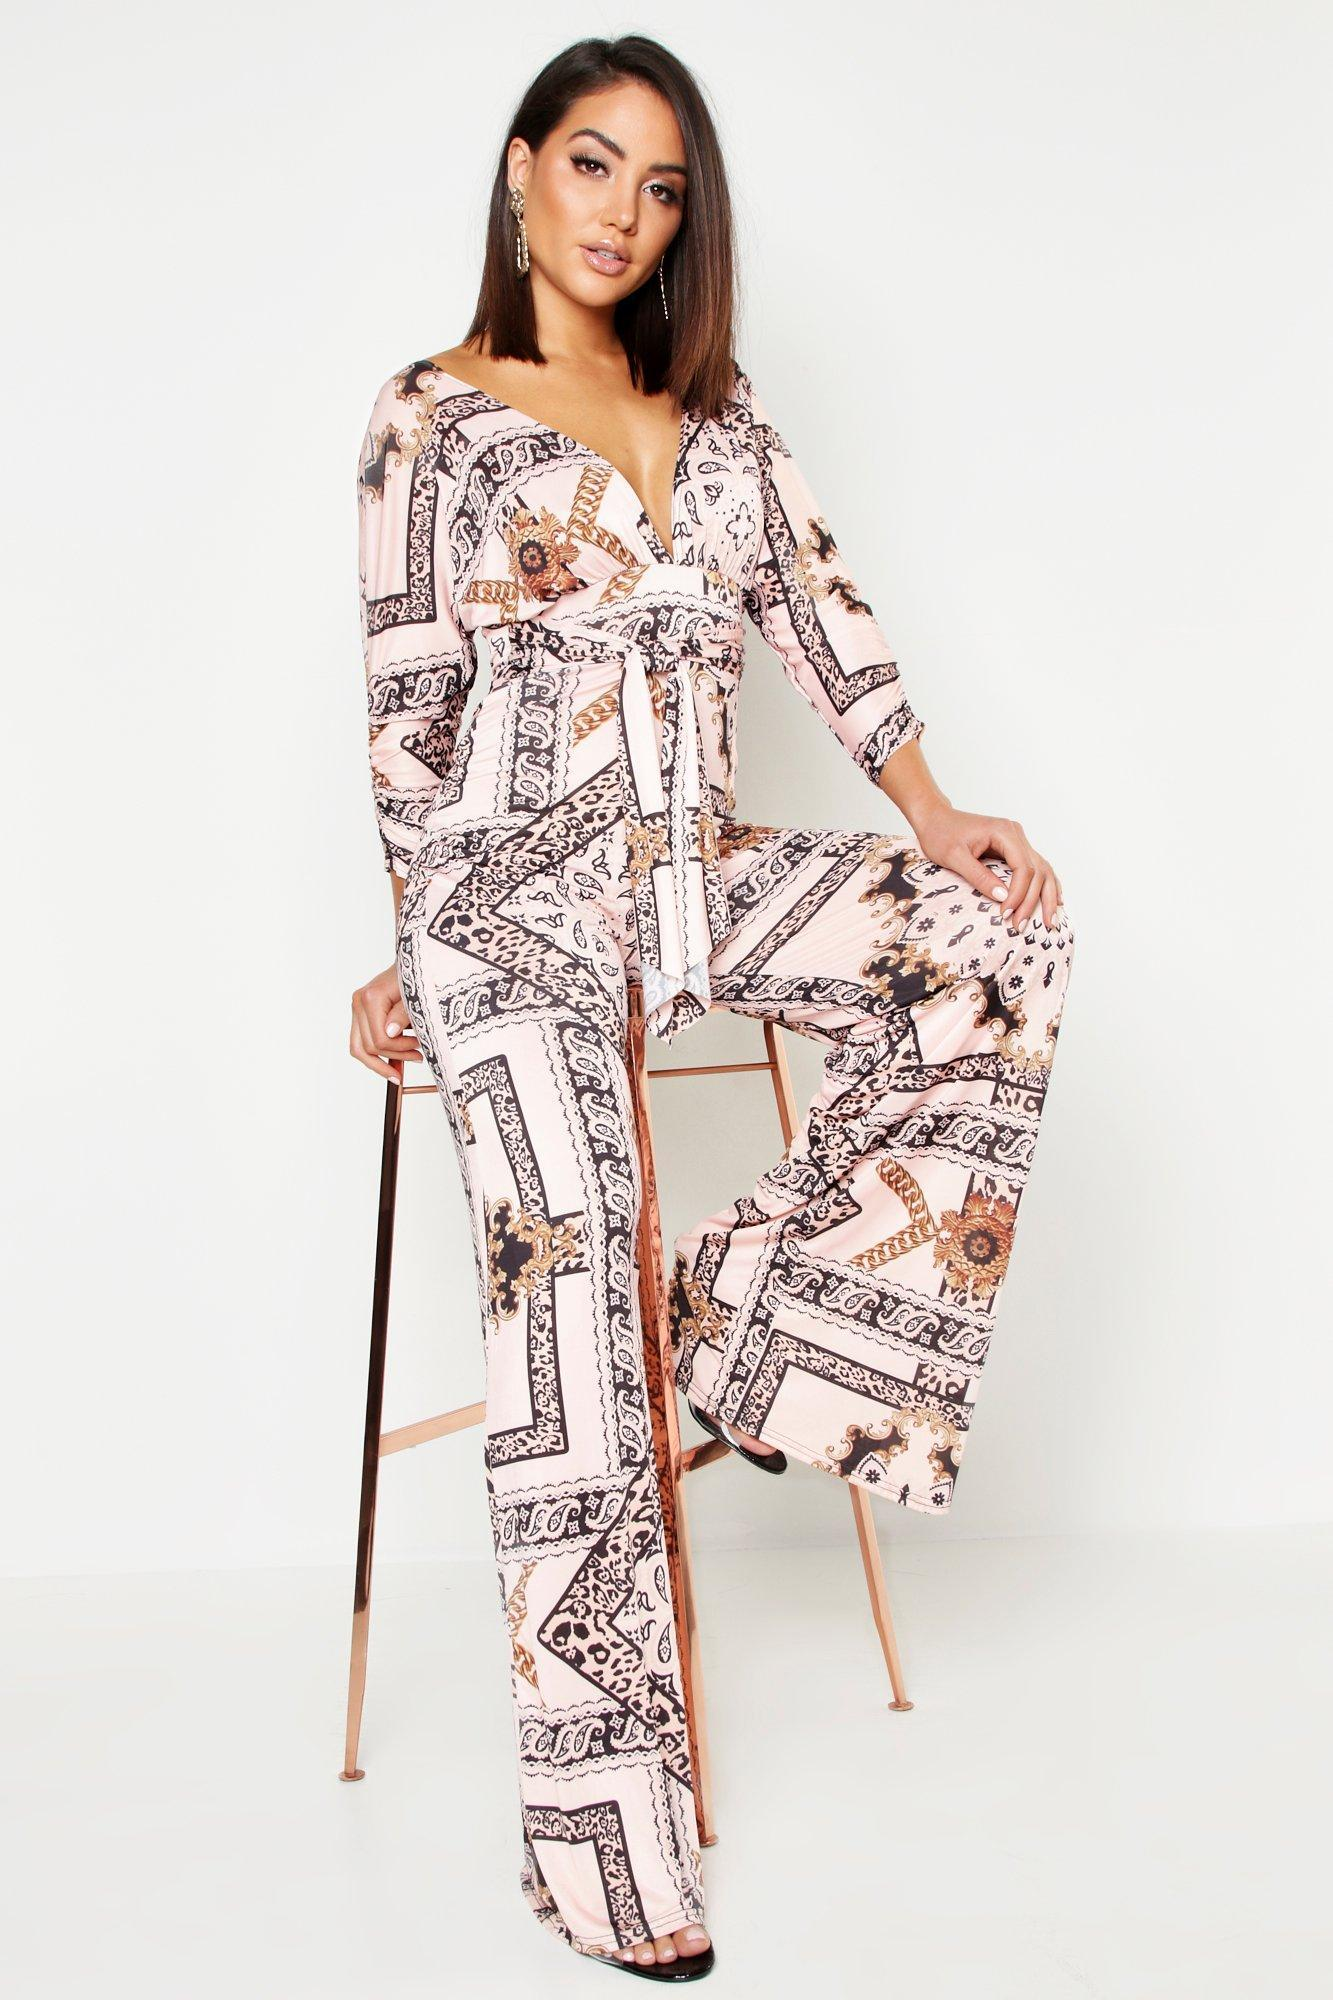 00d45cc8fbd Lyst - Boohoo Slinky Chain Print Wide Leg Plunge Jumpsuit in Pink